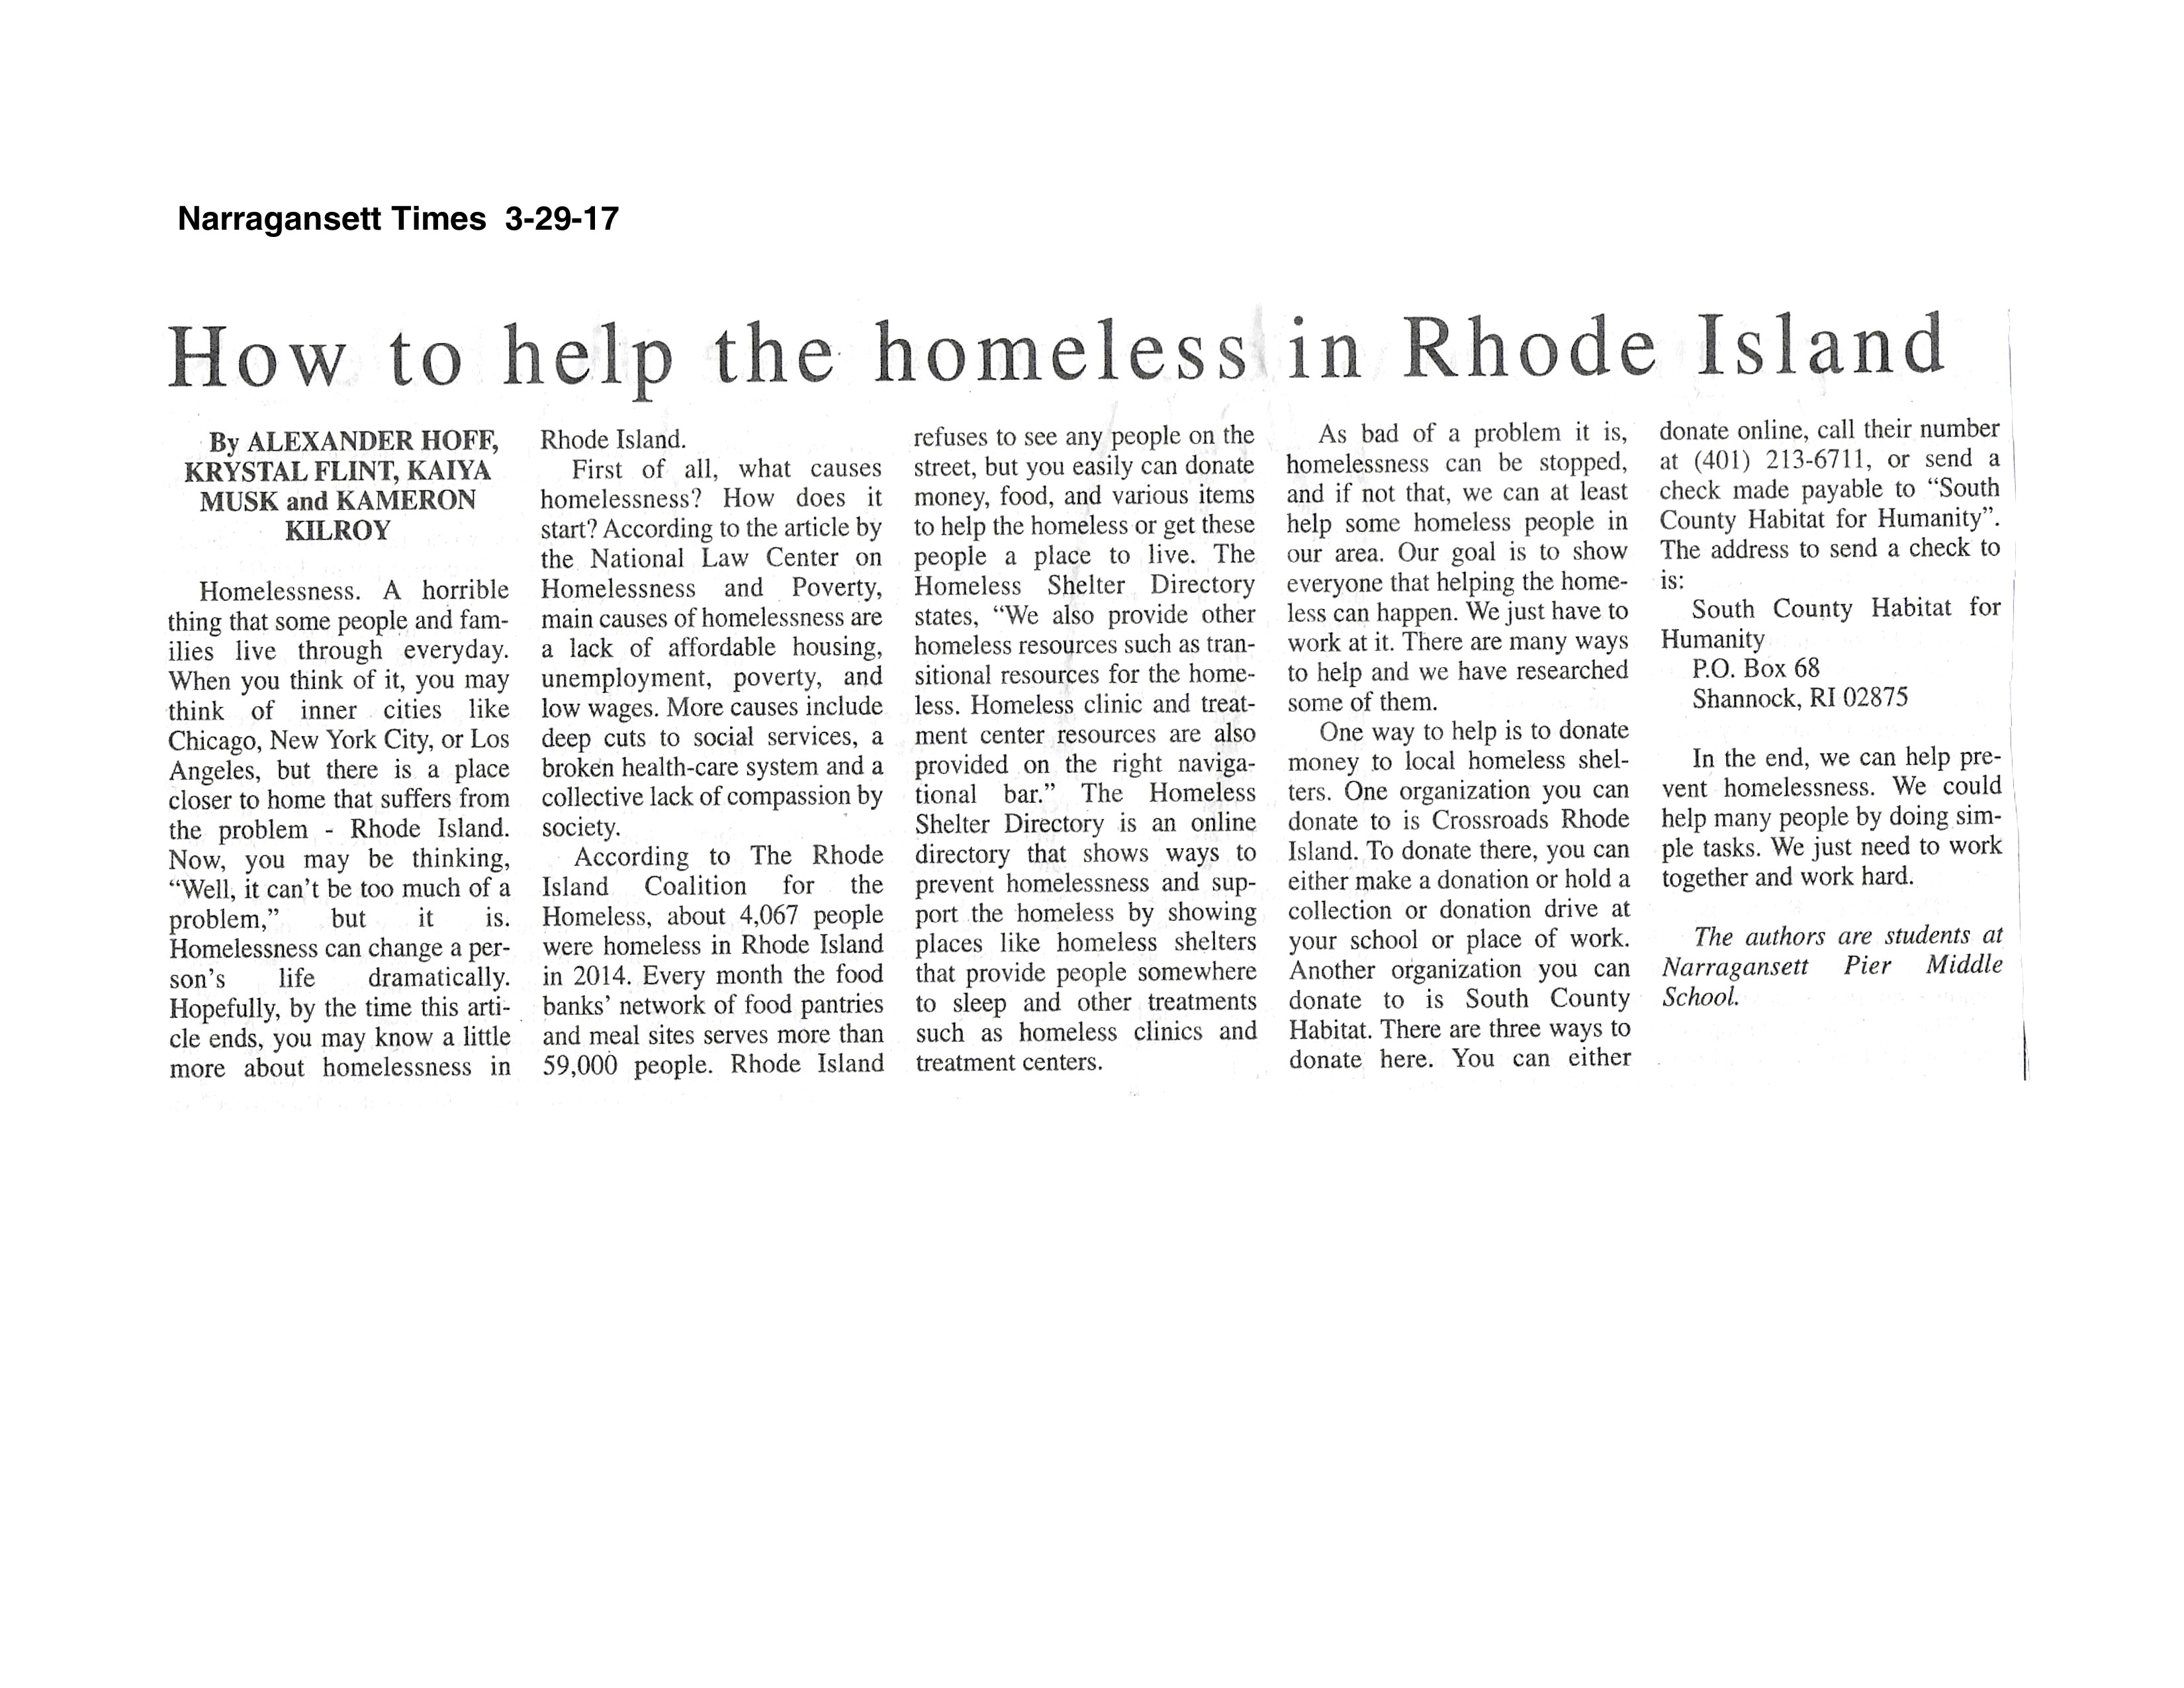 How to help RI Homeless - Narragansett Times